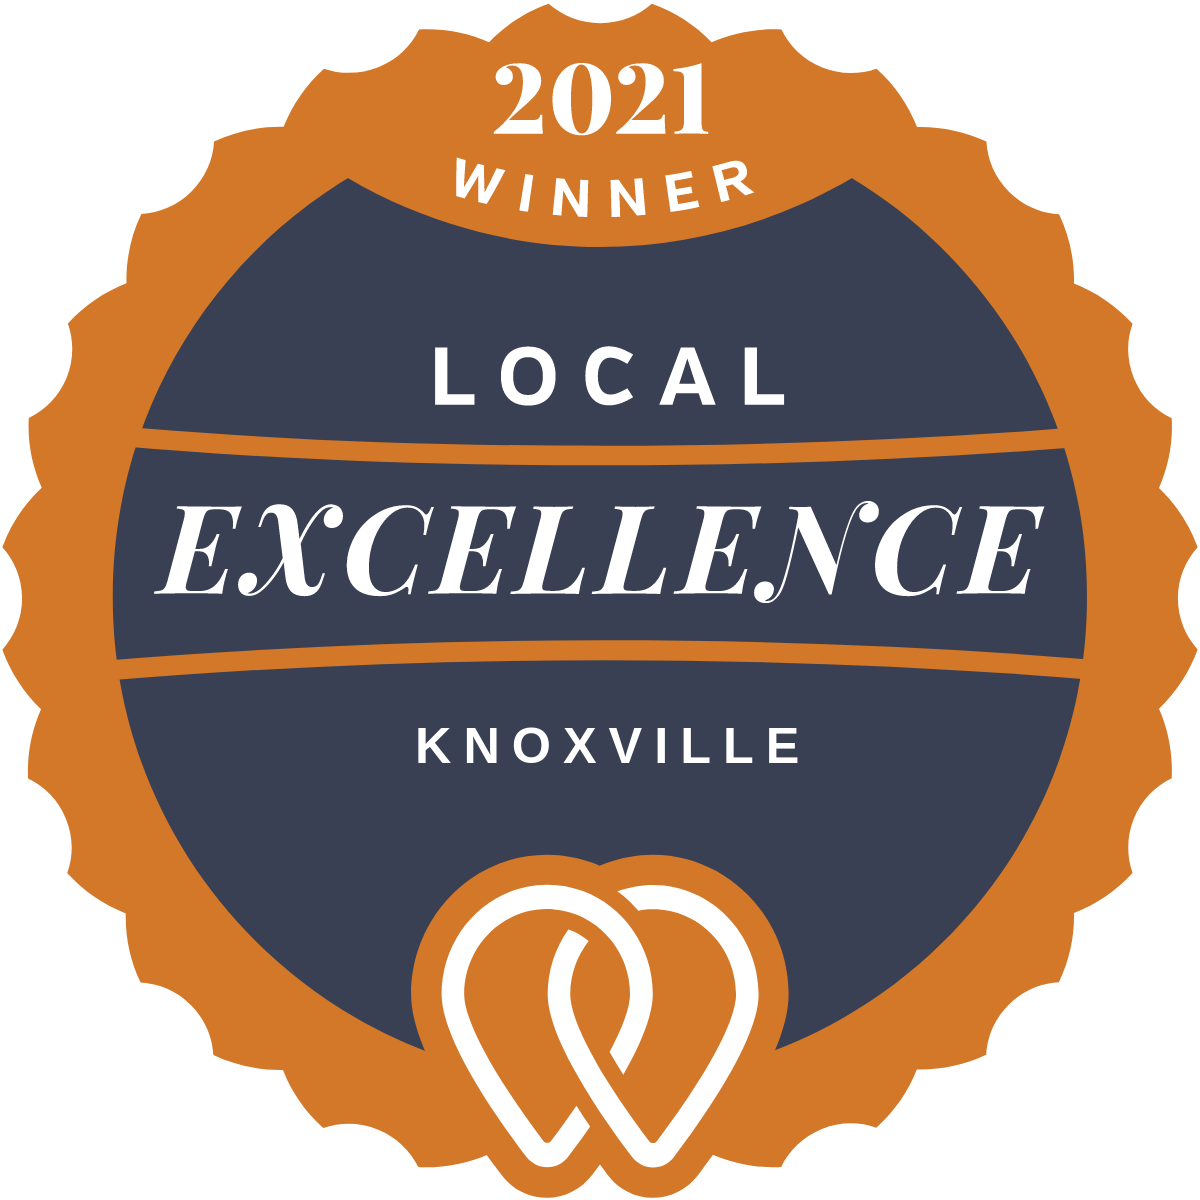 2021 Local Excellence Winner in Knoxville, TN